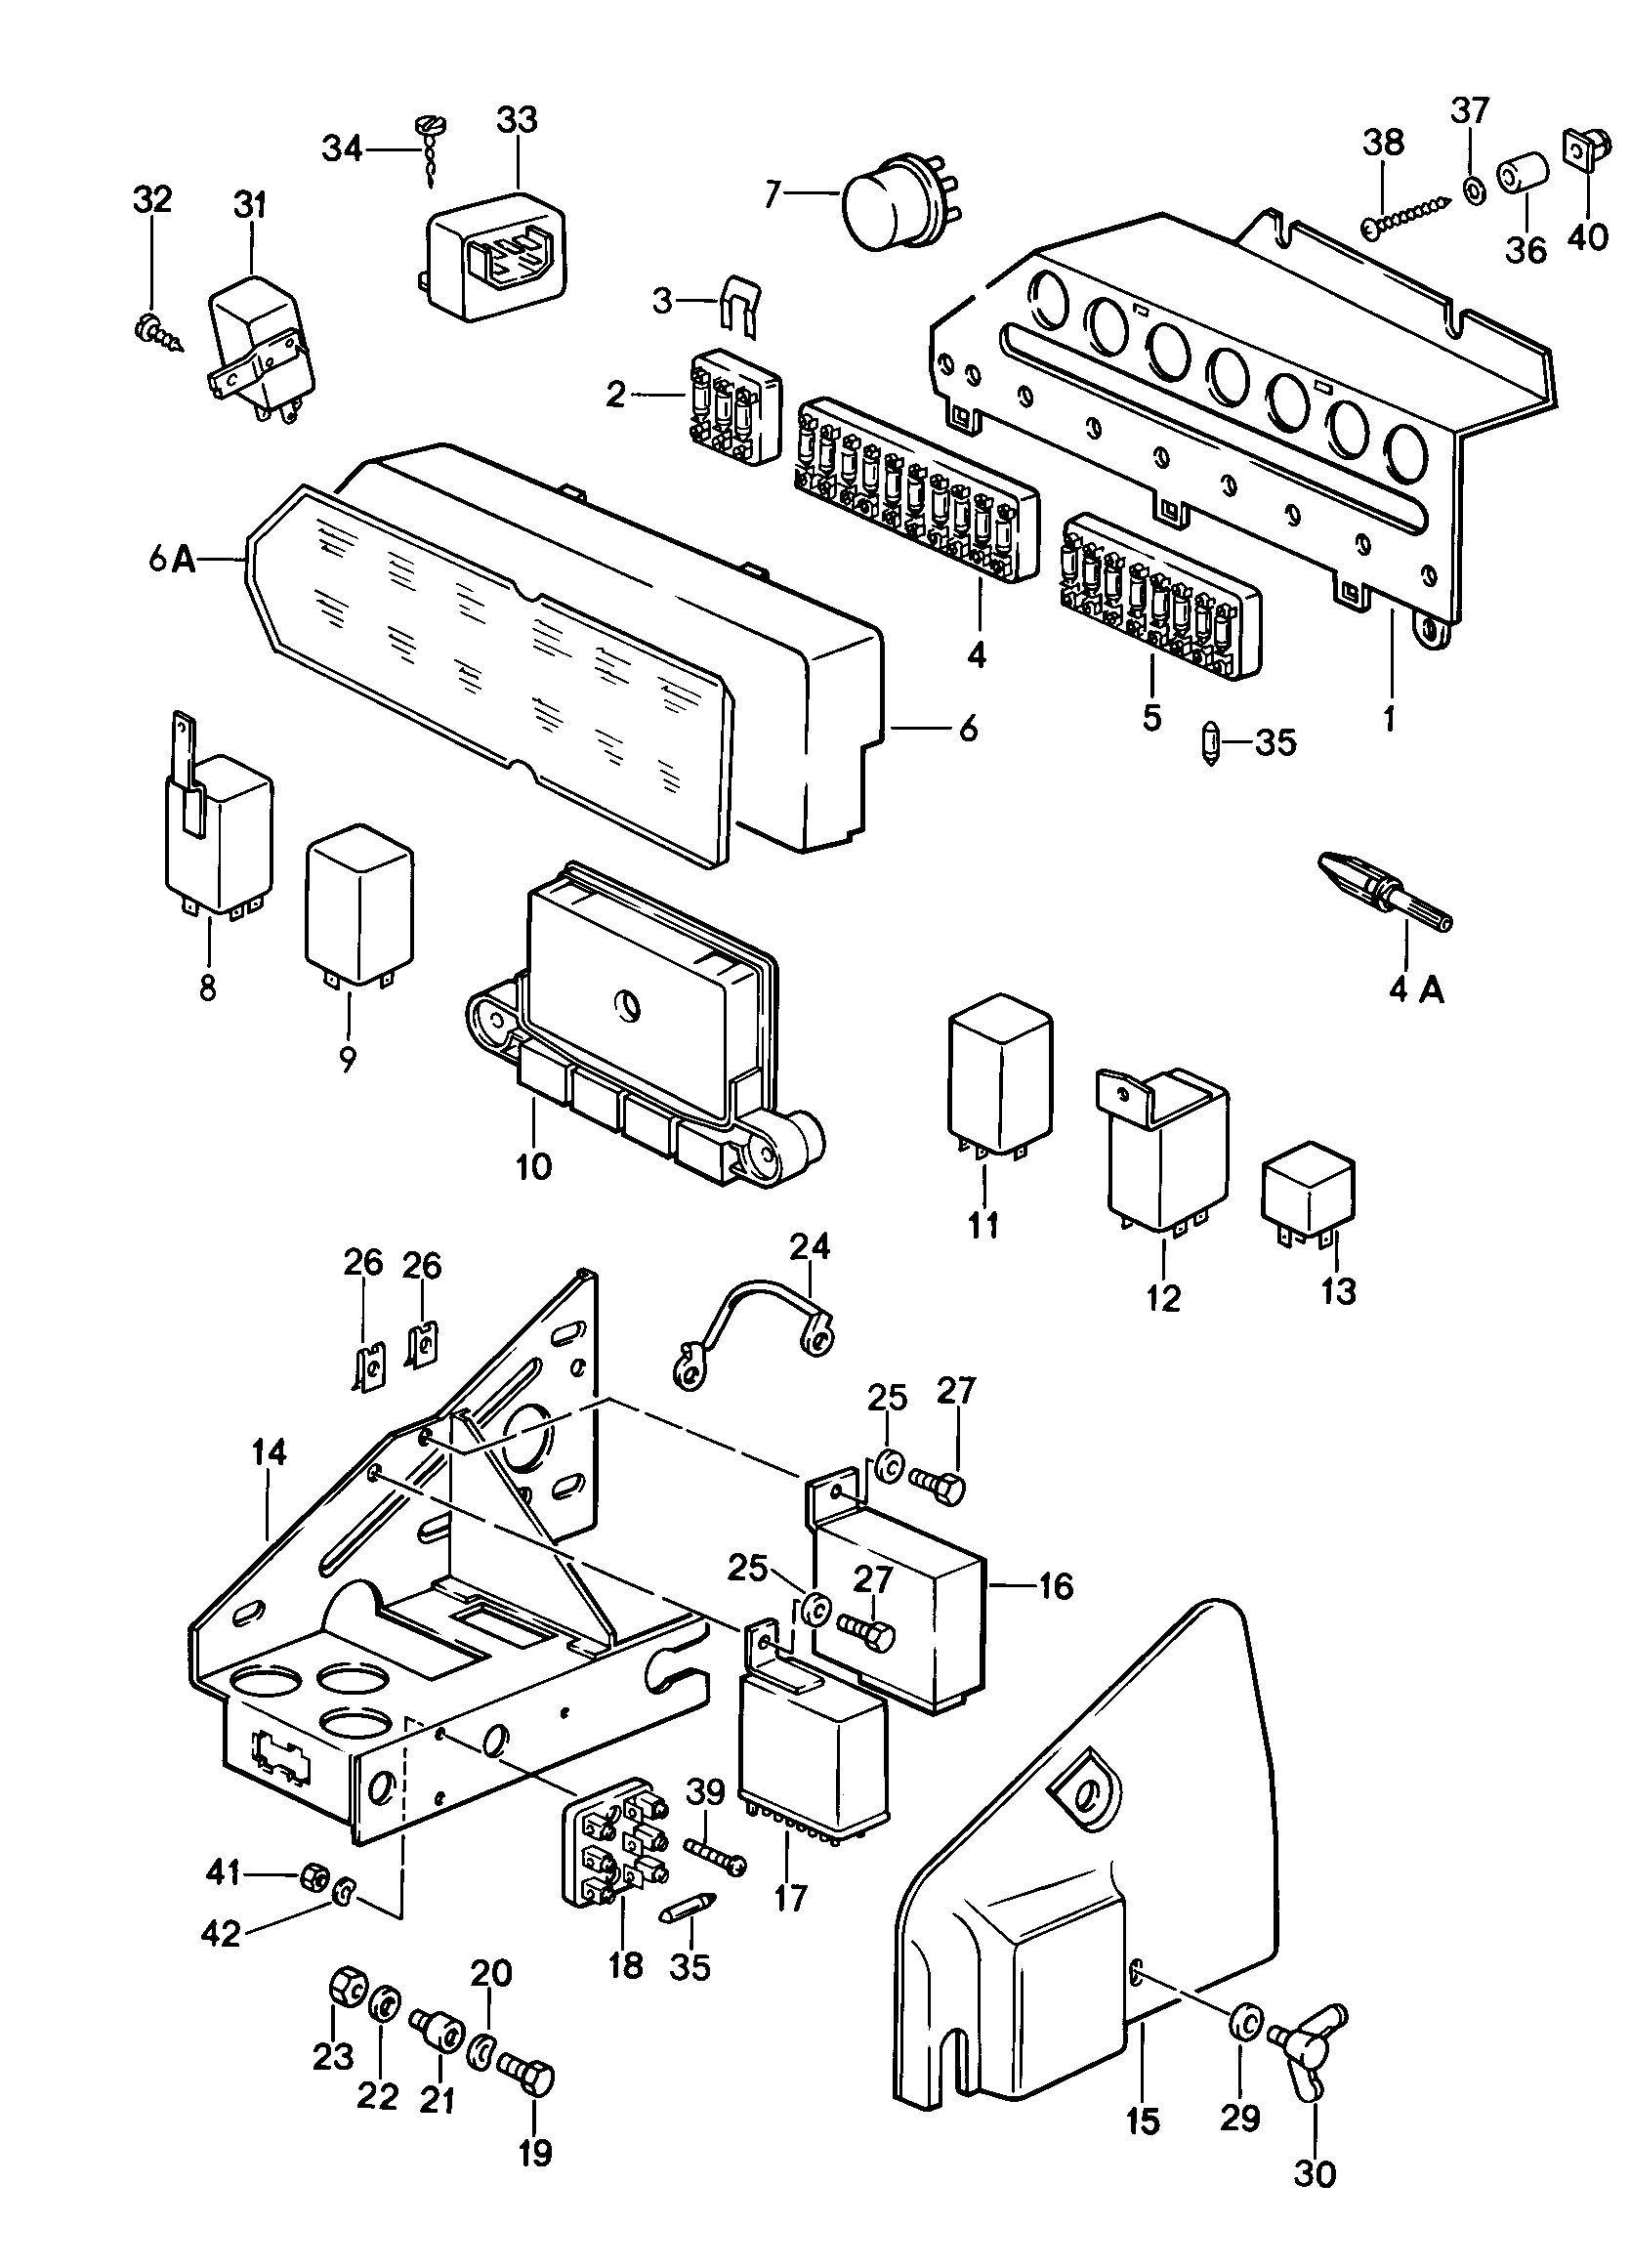 1989 porsche 911 fuse box diagram